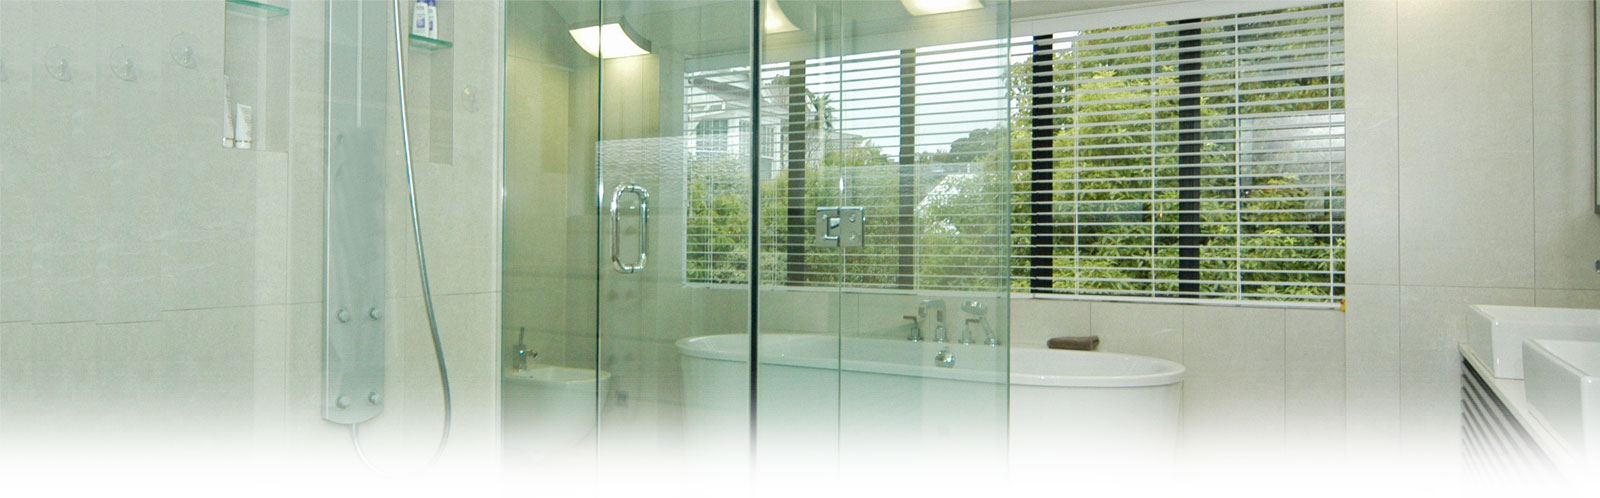 Frameless Glass Shower Doors Custom Glass Railings